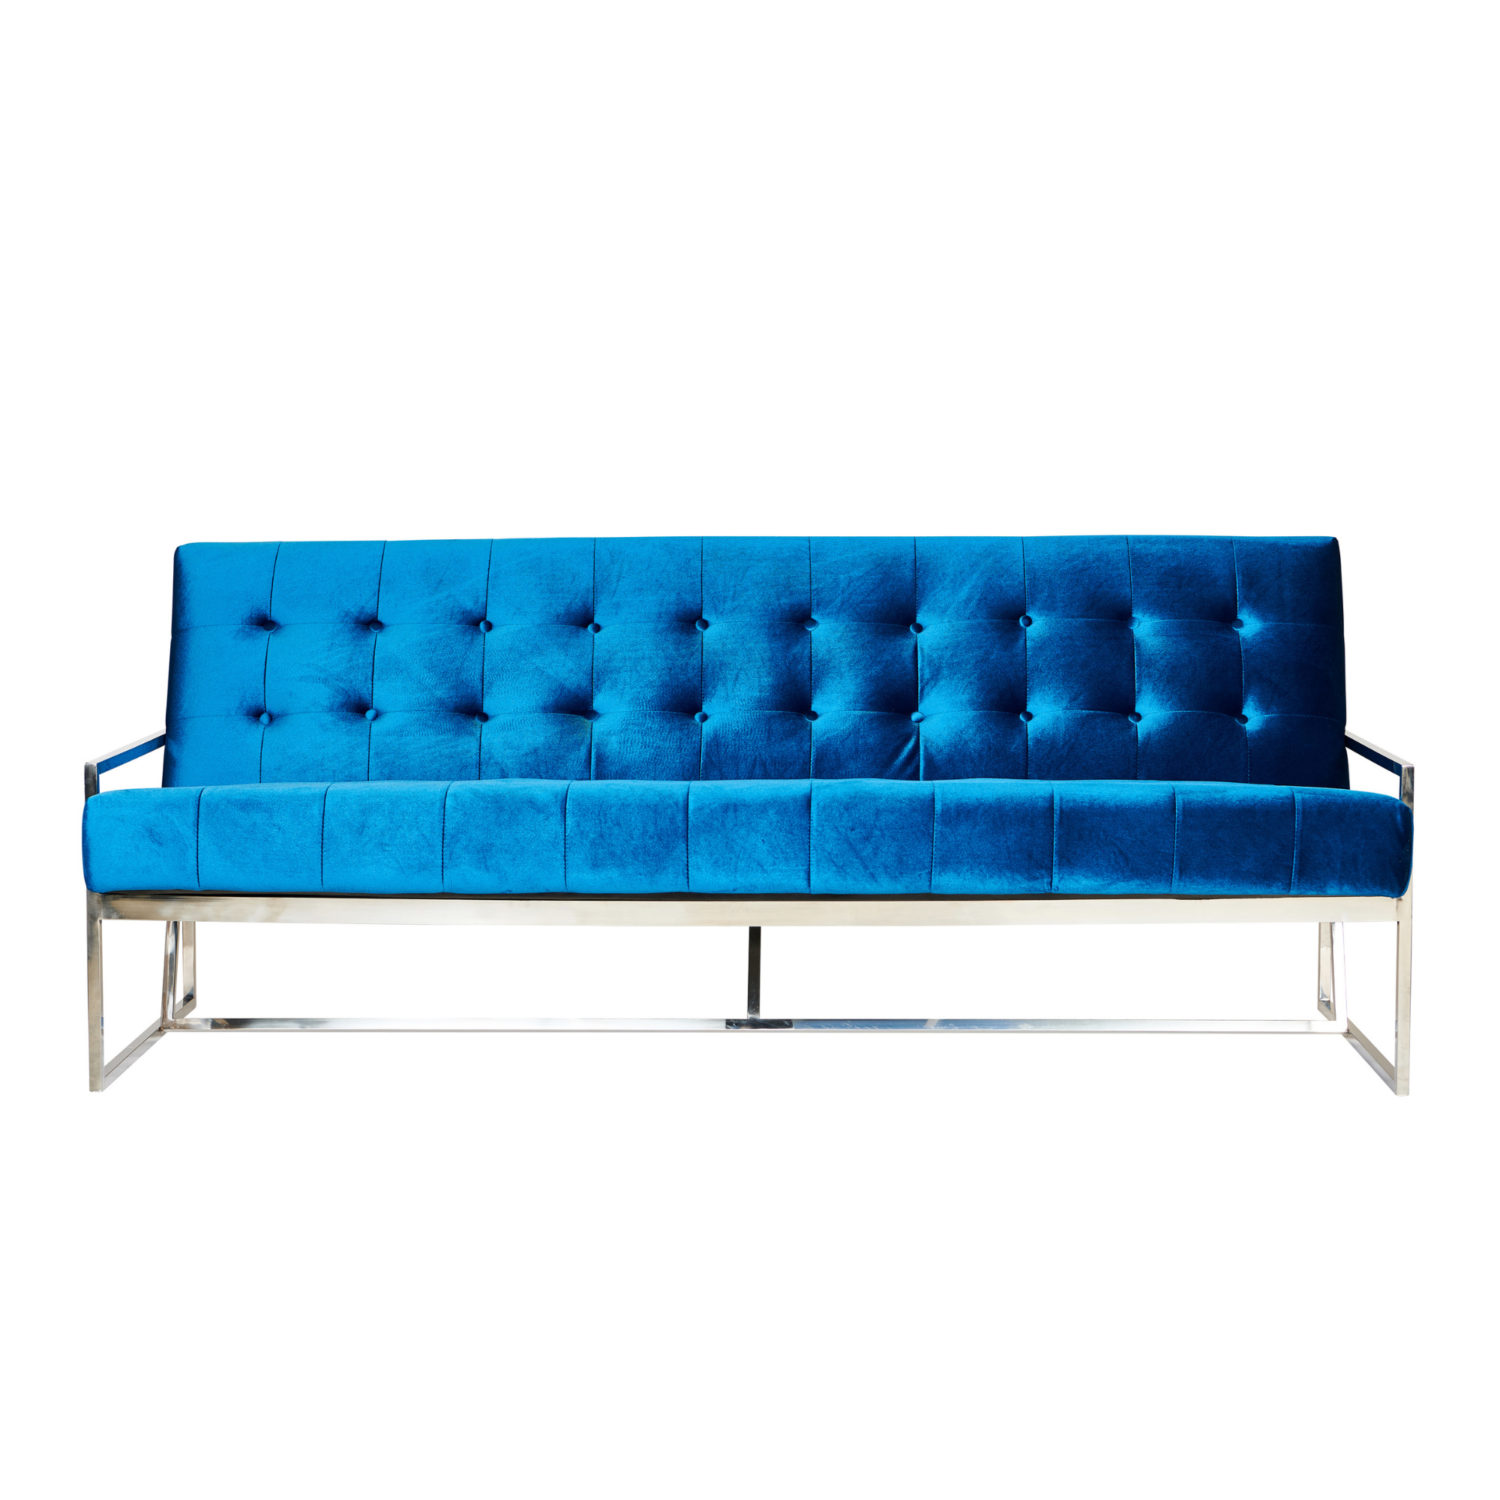 Starlet Three Seater Sofa - Teal / Silver Frame - Event Artillery